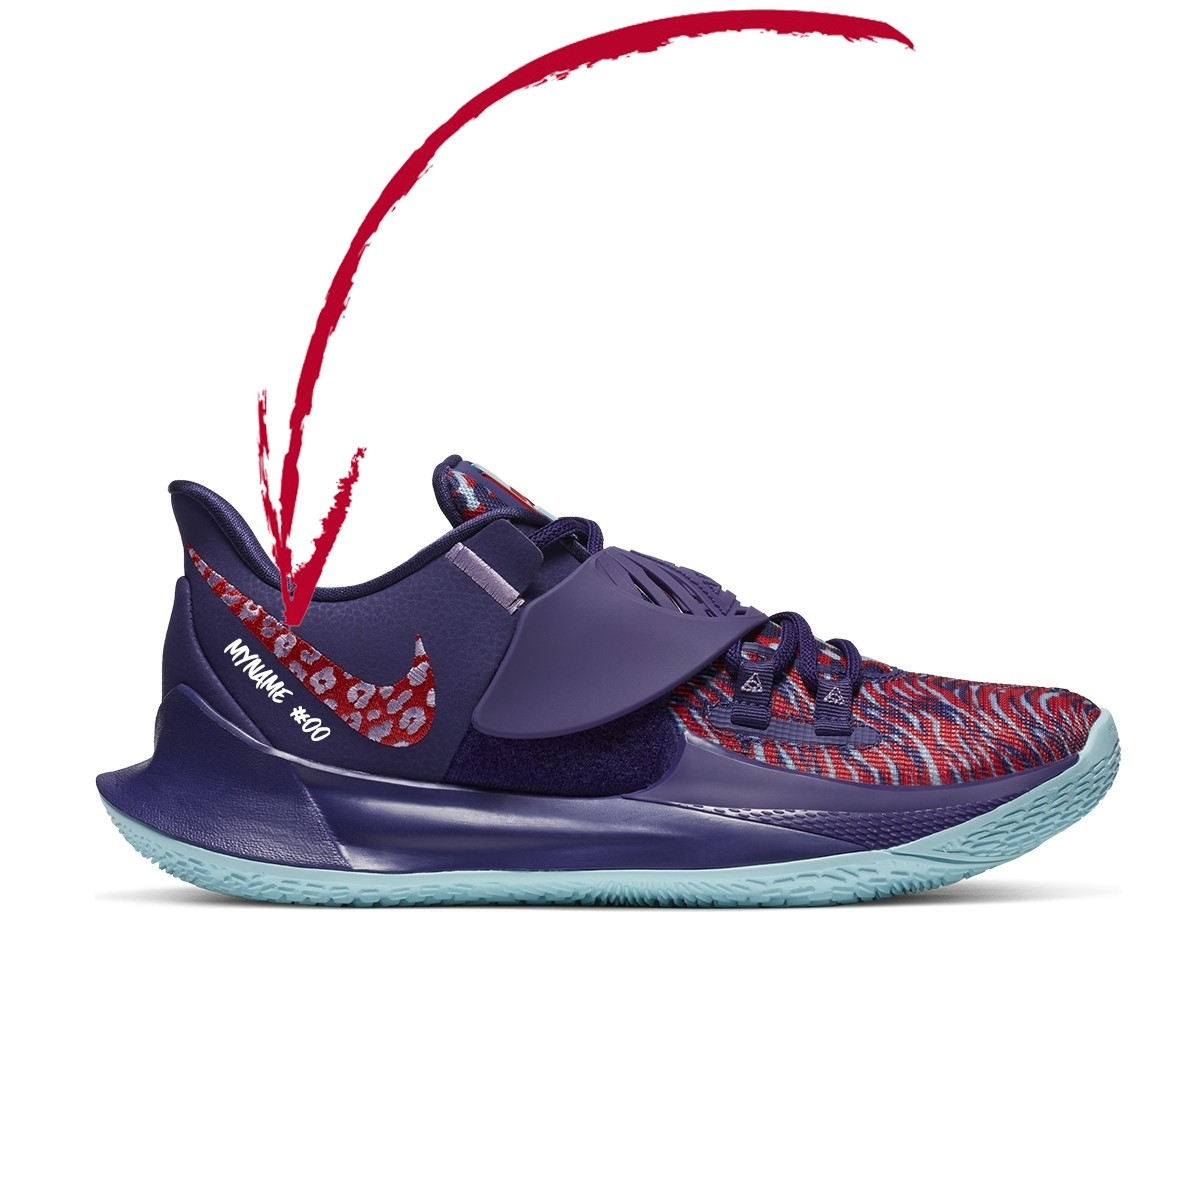 Nike Kyrie Low 3 'New Orchid'-CJ1286-500